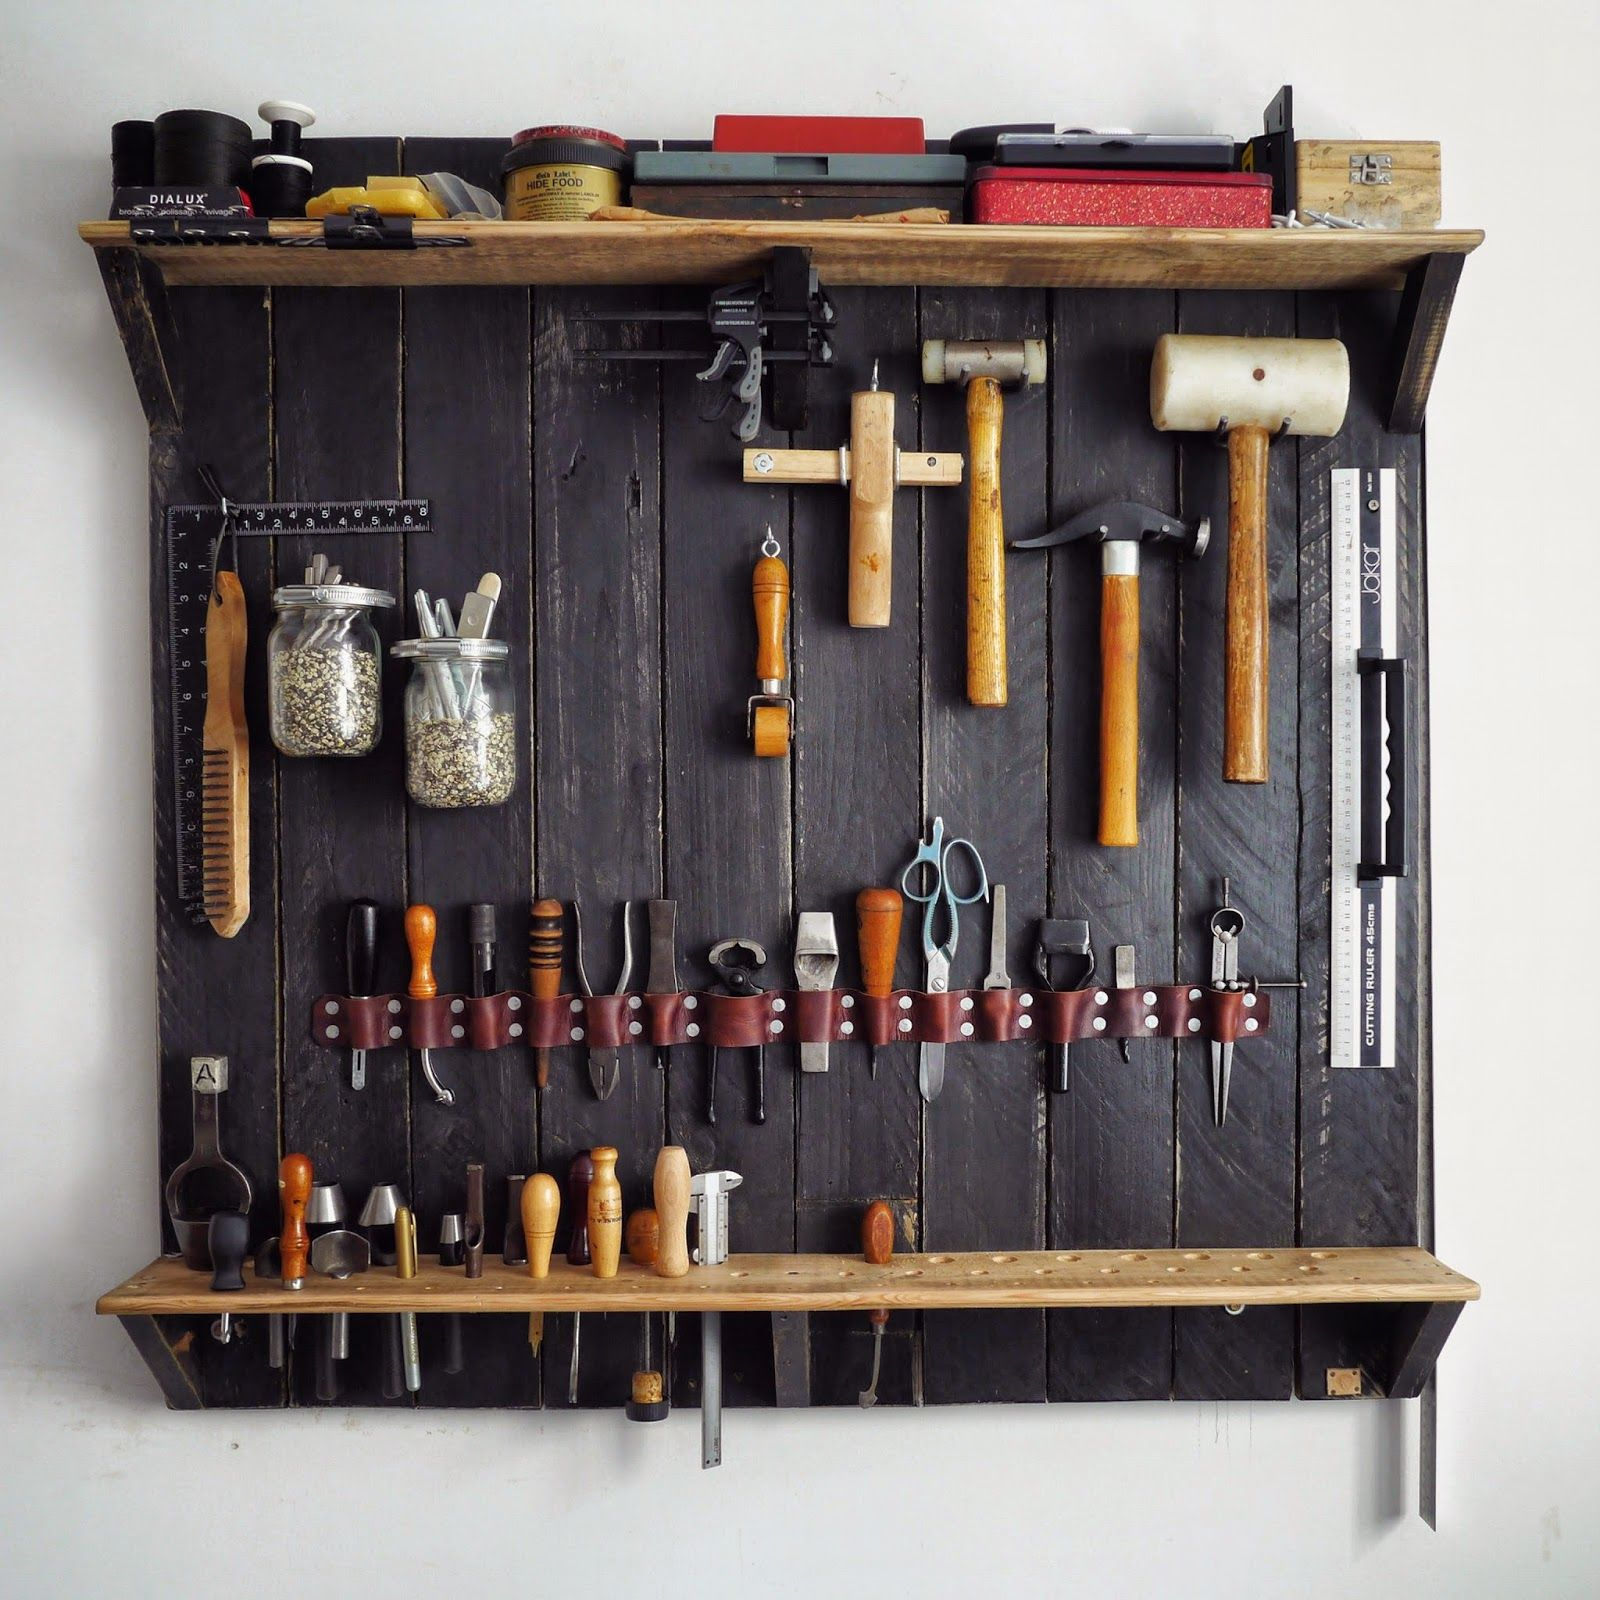 A Wallmounted Rack for my Leatherworking Tools